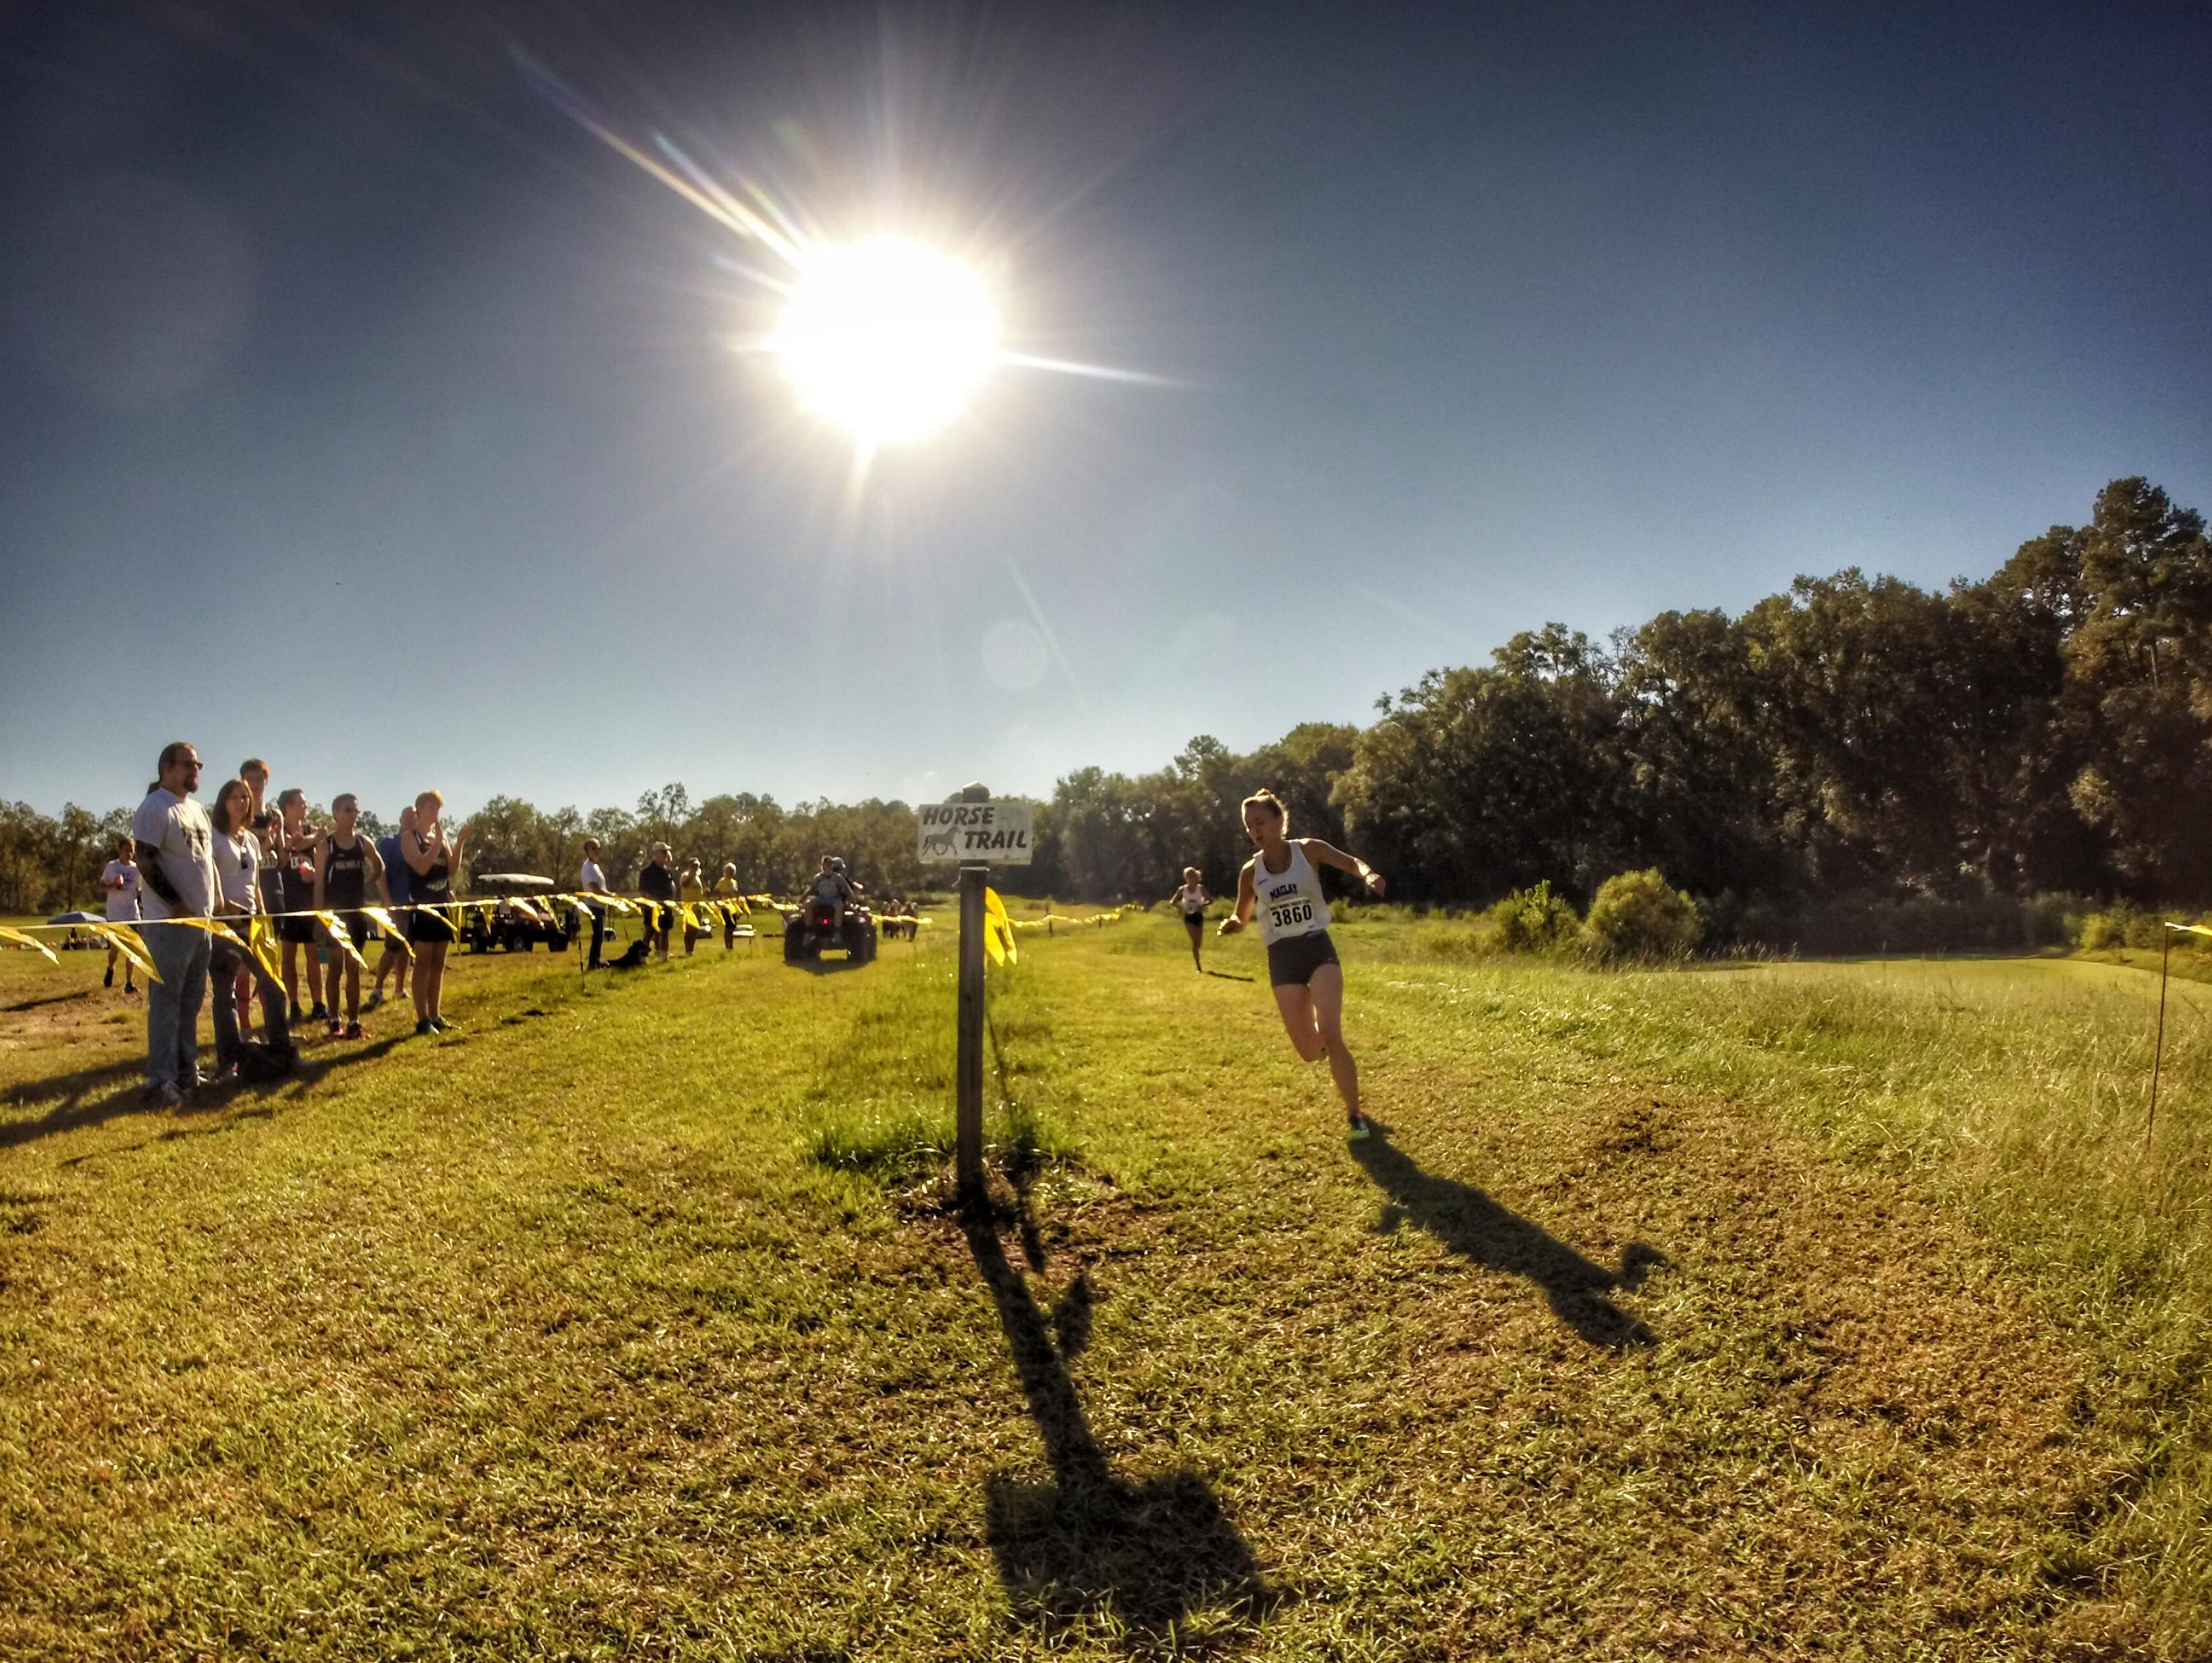 One of the toughest elements of the Aucilla Warrior Stampede is a hairpin curve at the 2.5-mile mark, which Maclay junior Caroline Willis traverses with teammate Lindsay James not far behind.